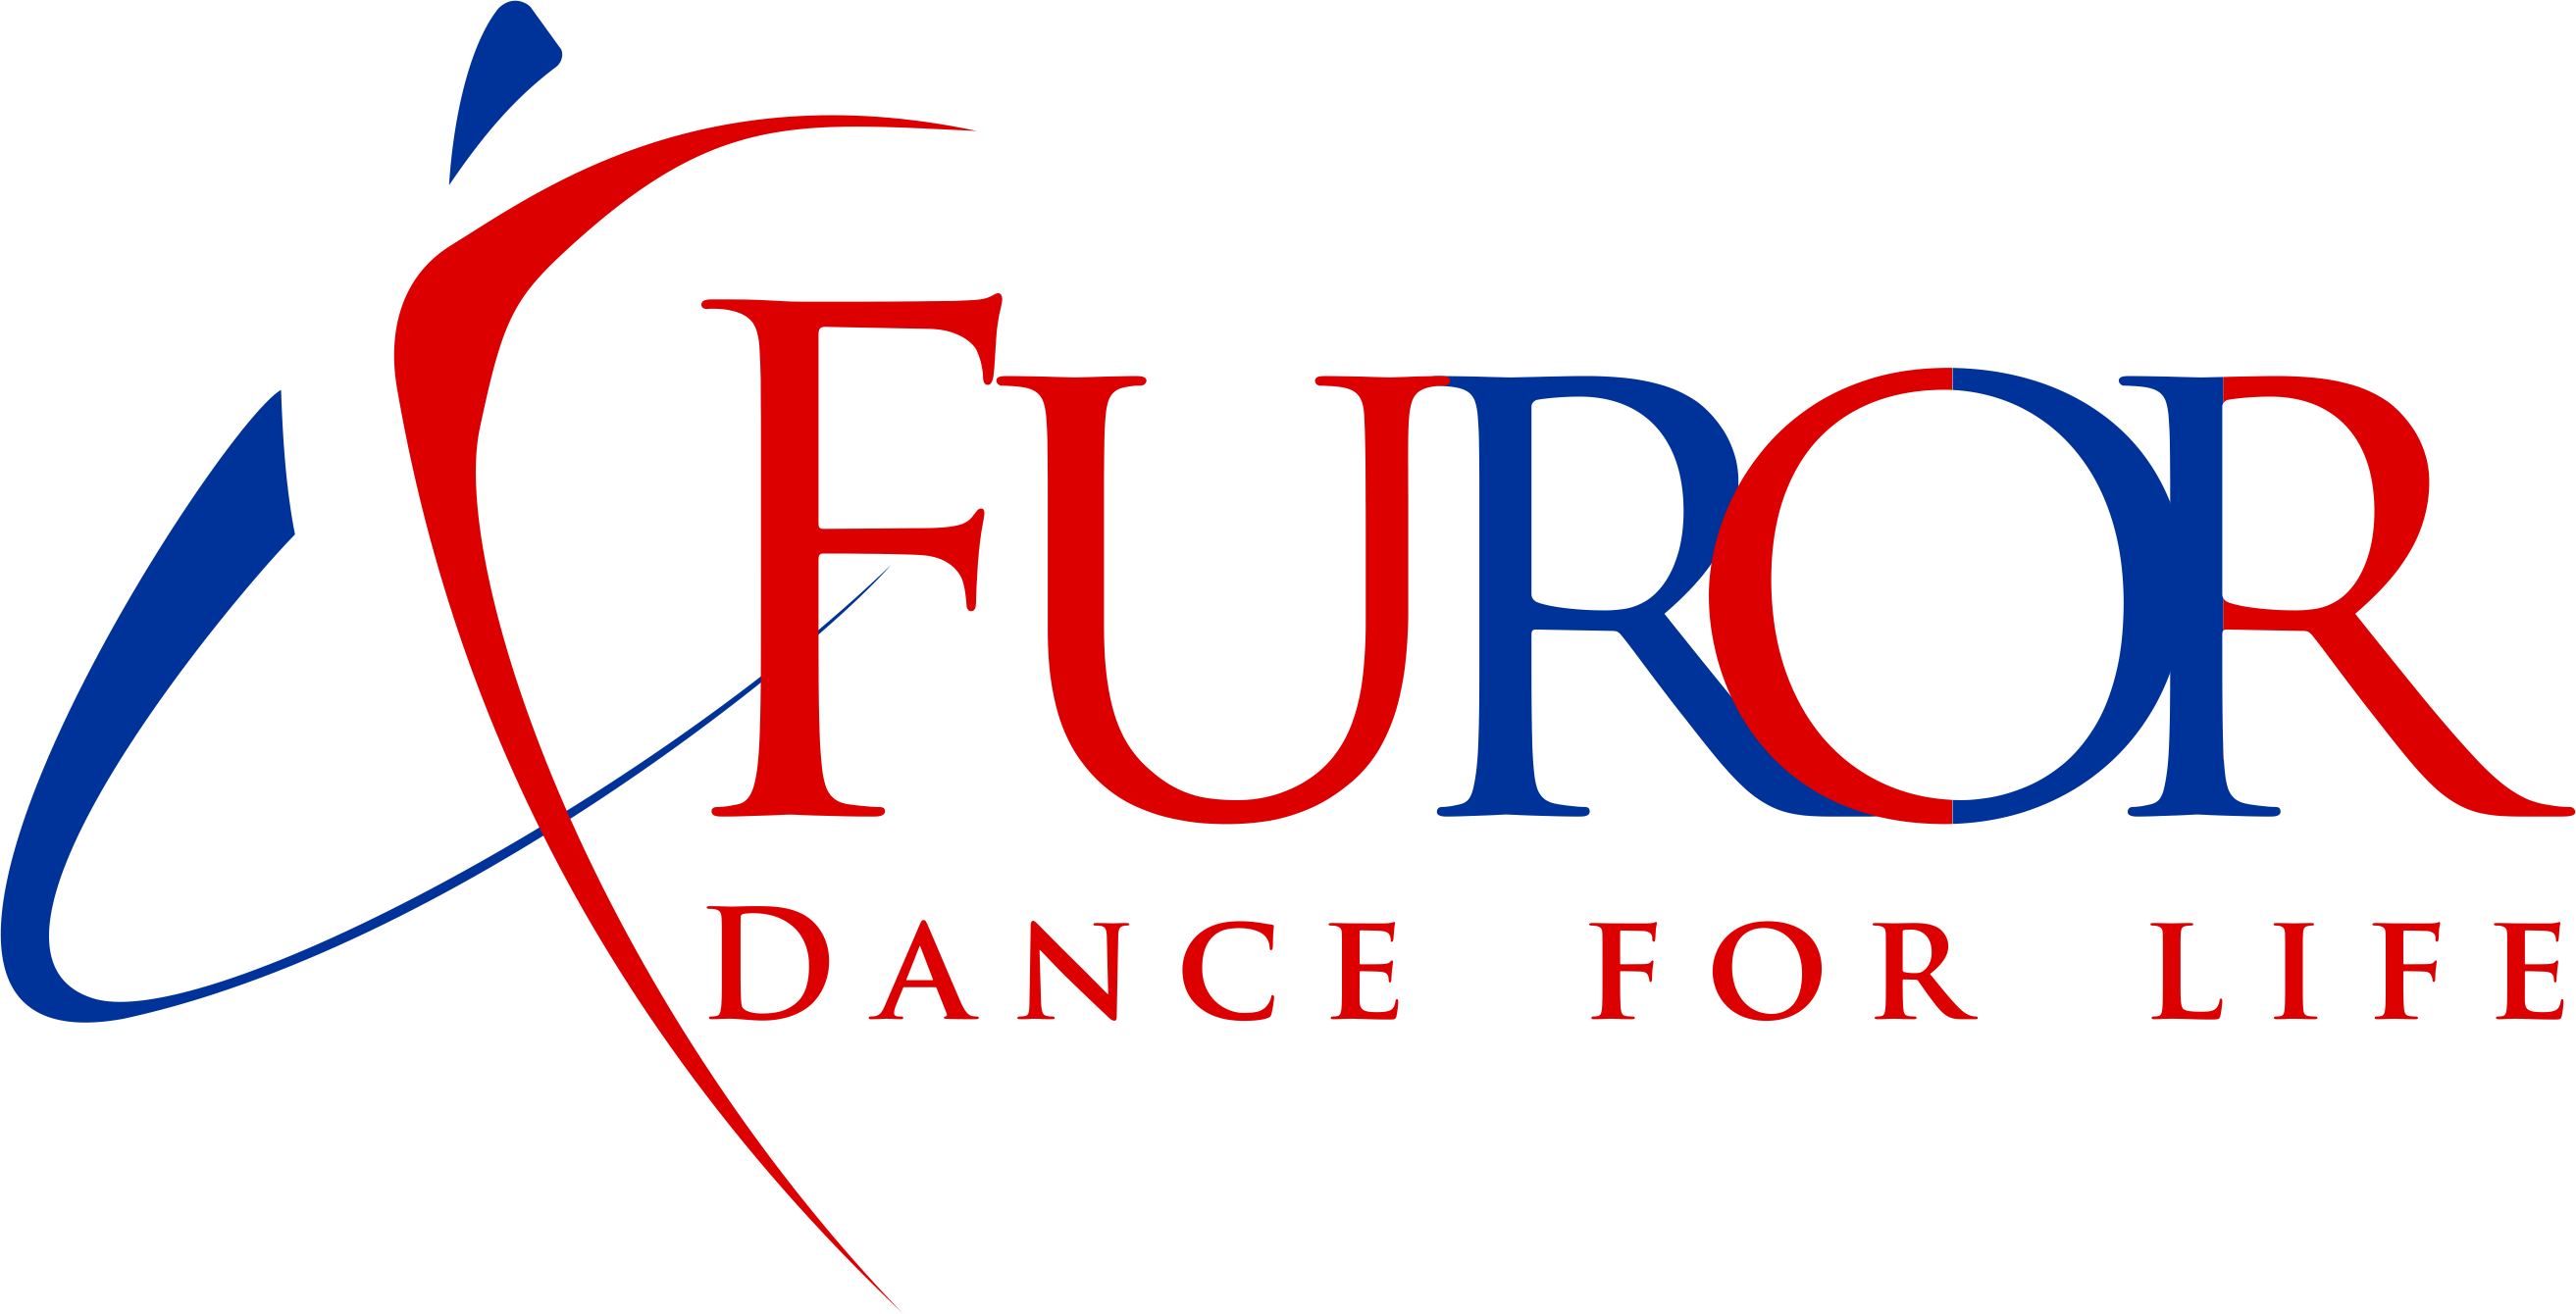 Furor Hyderabad, the premier destination for Salsa in India | Call us on 88860-72572 | Email: hyd@dancehyderabad.com